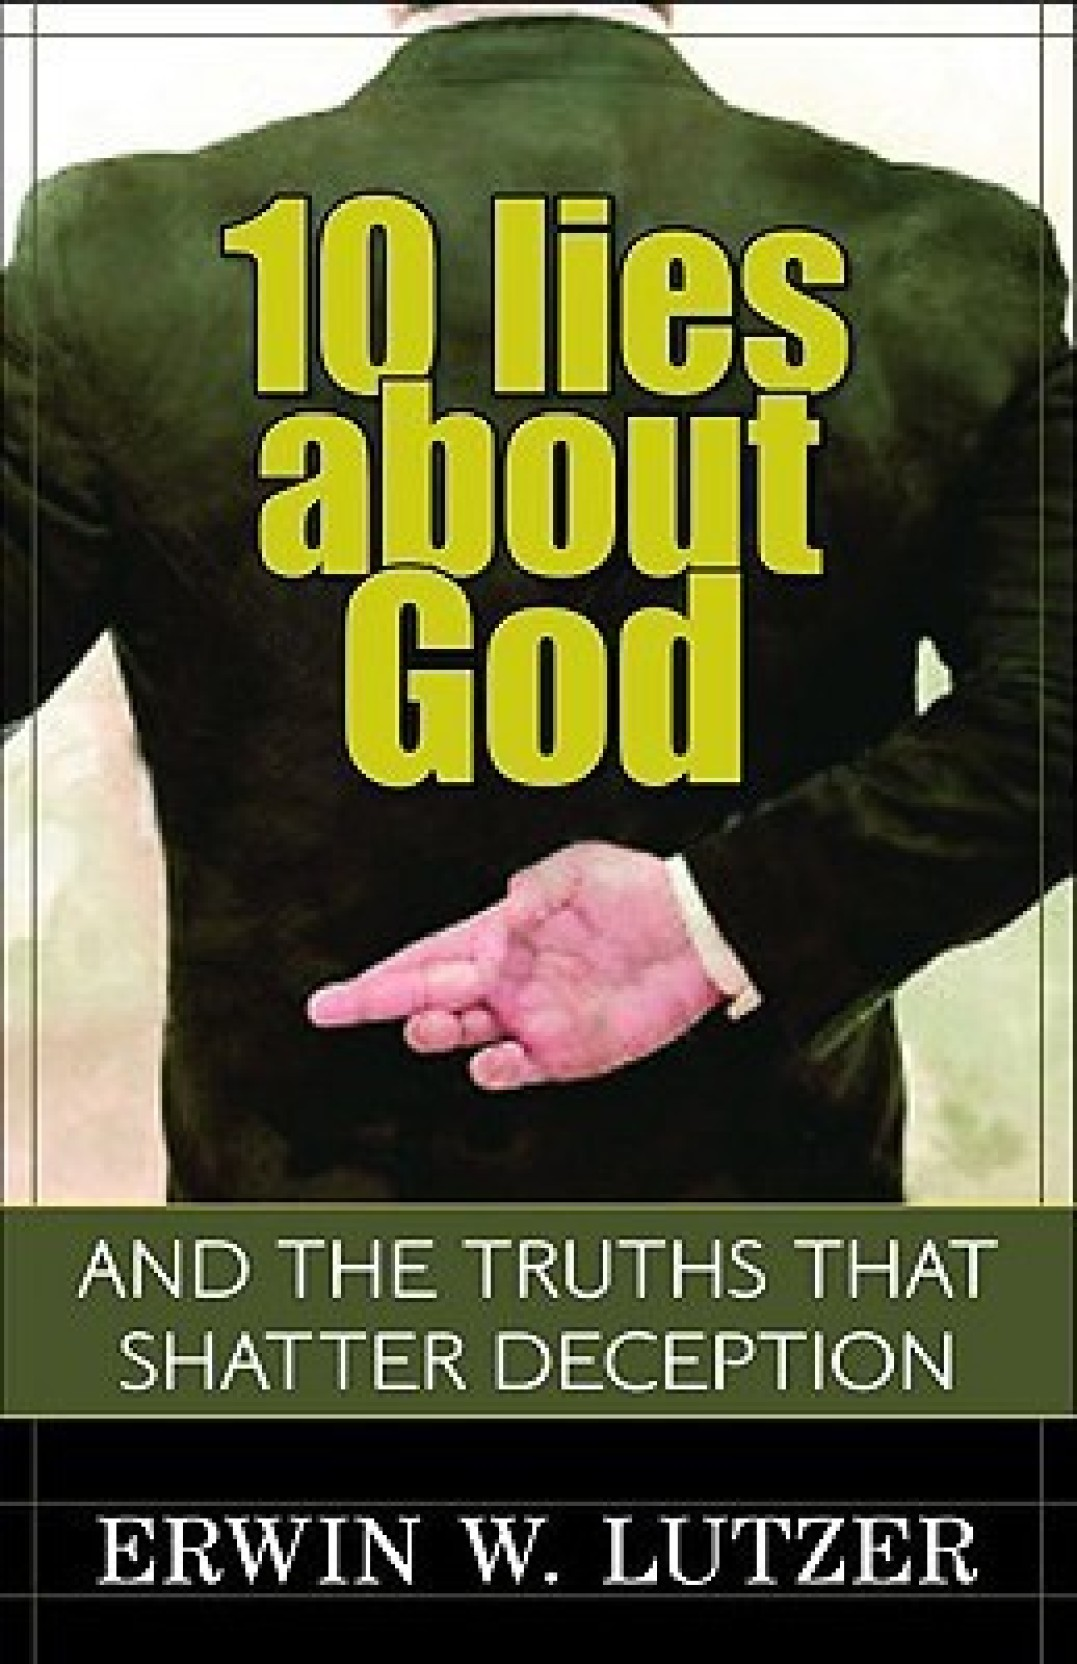 10 Lies About God: And the Truths That Shatter Deception. ADD TO CART